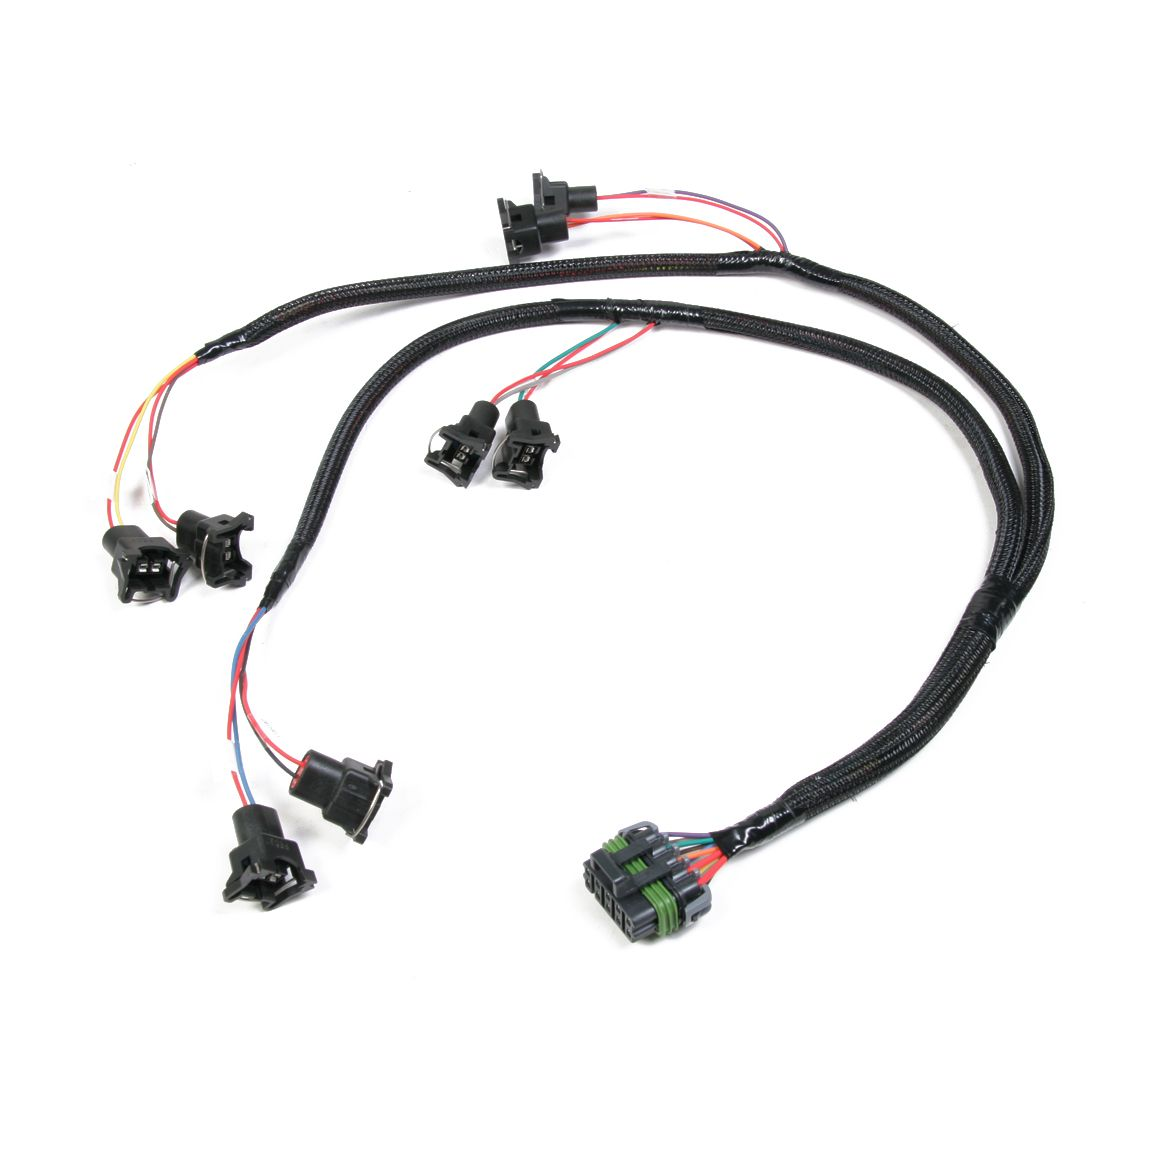 558 200 Holley Performance Engine Wiring Harness For Use